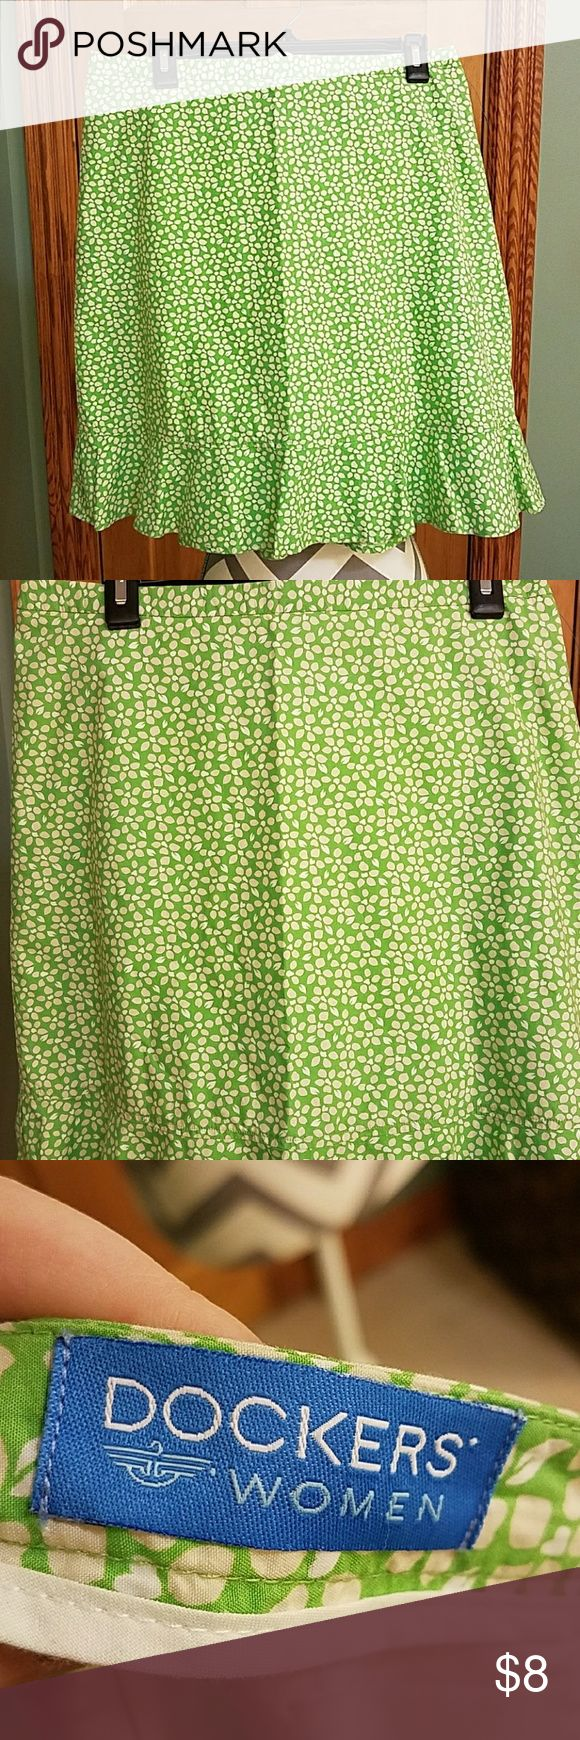 DOCKERS WOMEN'S SKIRT SIZE 10!!! Very nice skirt worn one time in great shape.. this shirt zips up in the back and it's not a really shirt skirt be great for business skirt.. Dockers Skirts